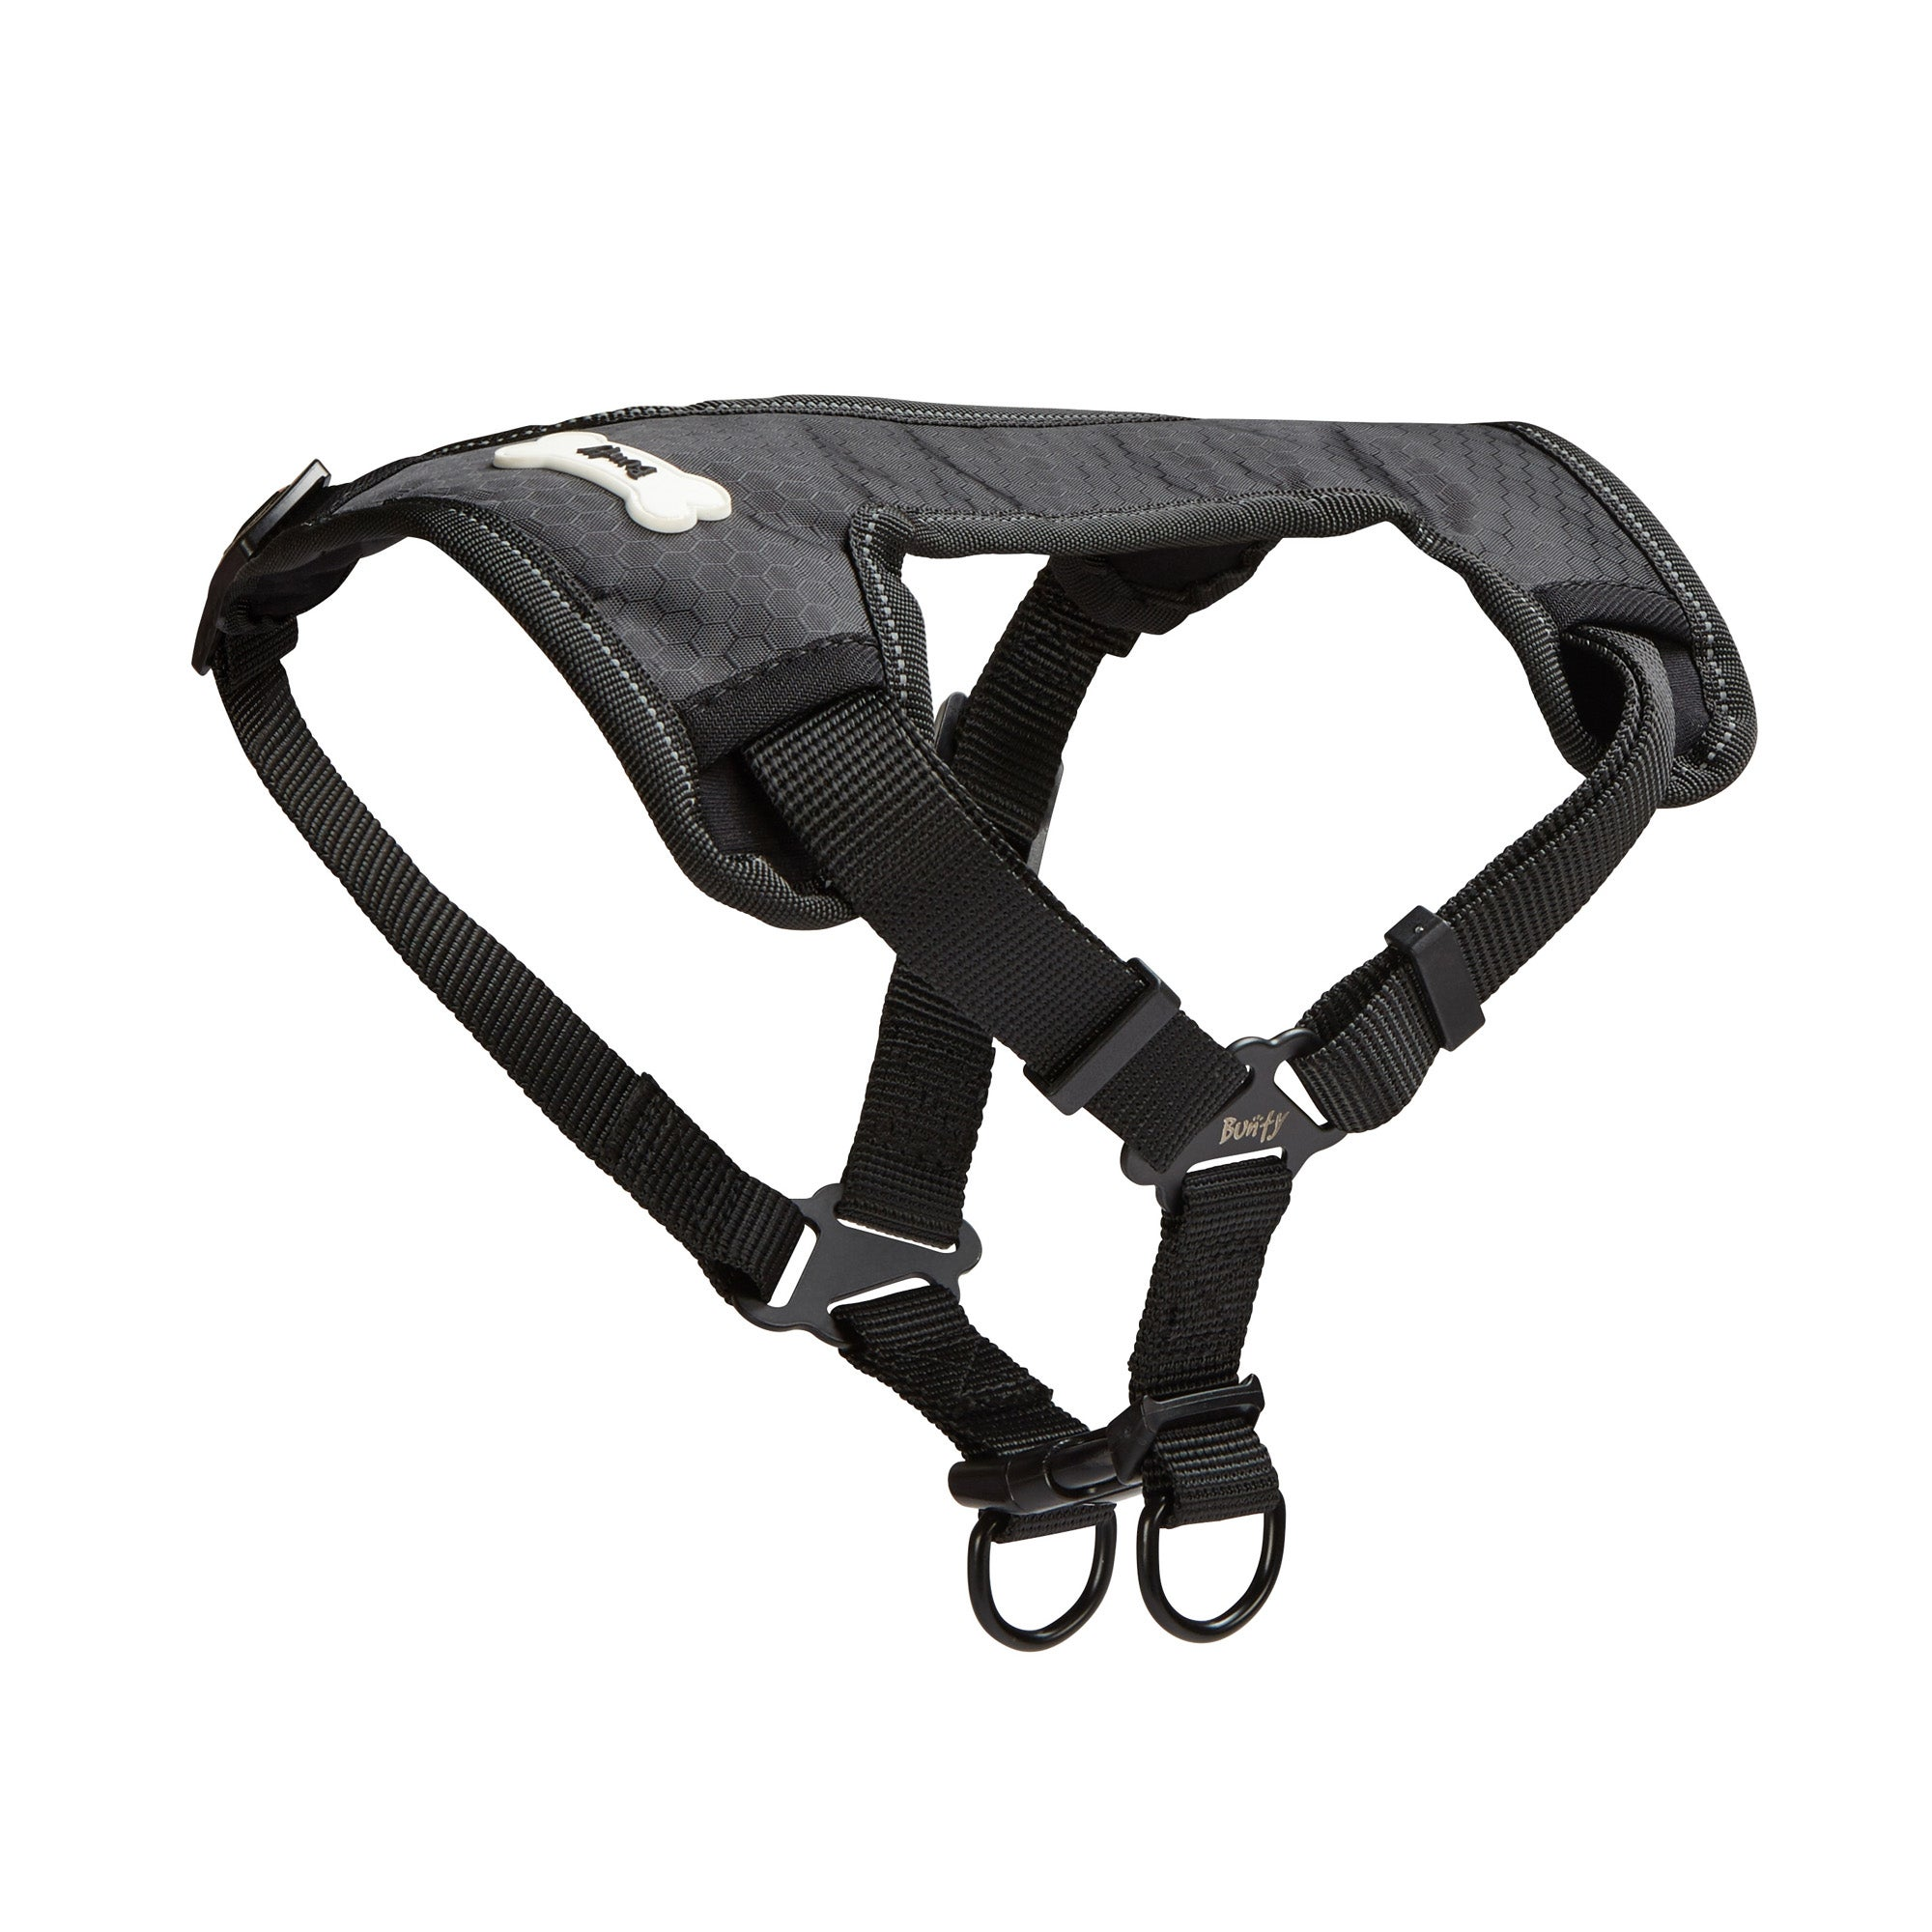 Bunty Black Strap 'N' Strole Dog Harness Black